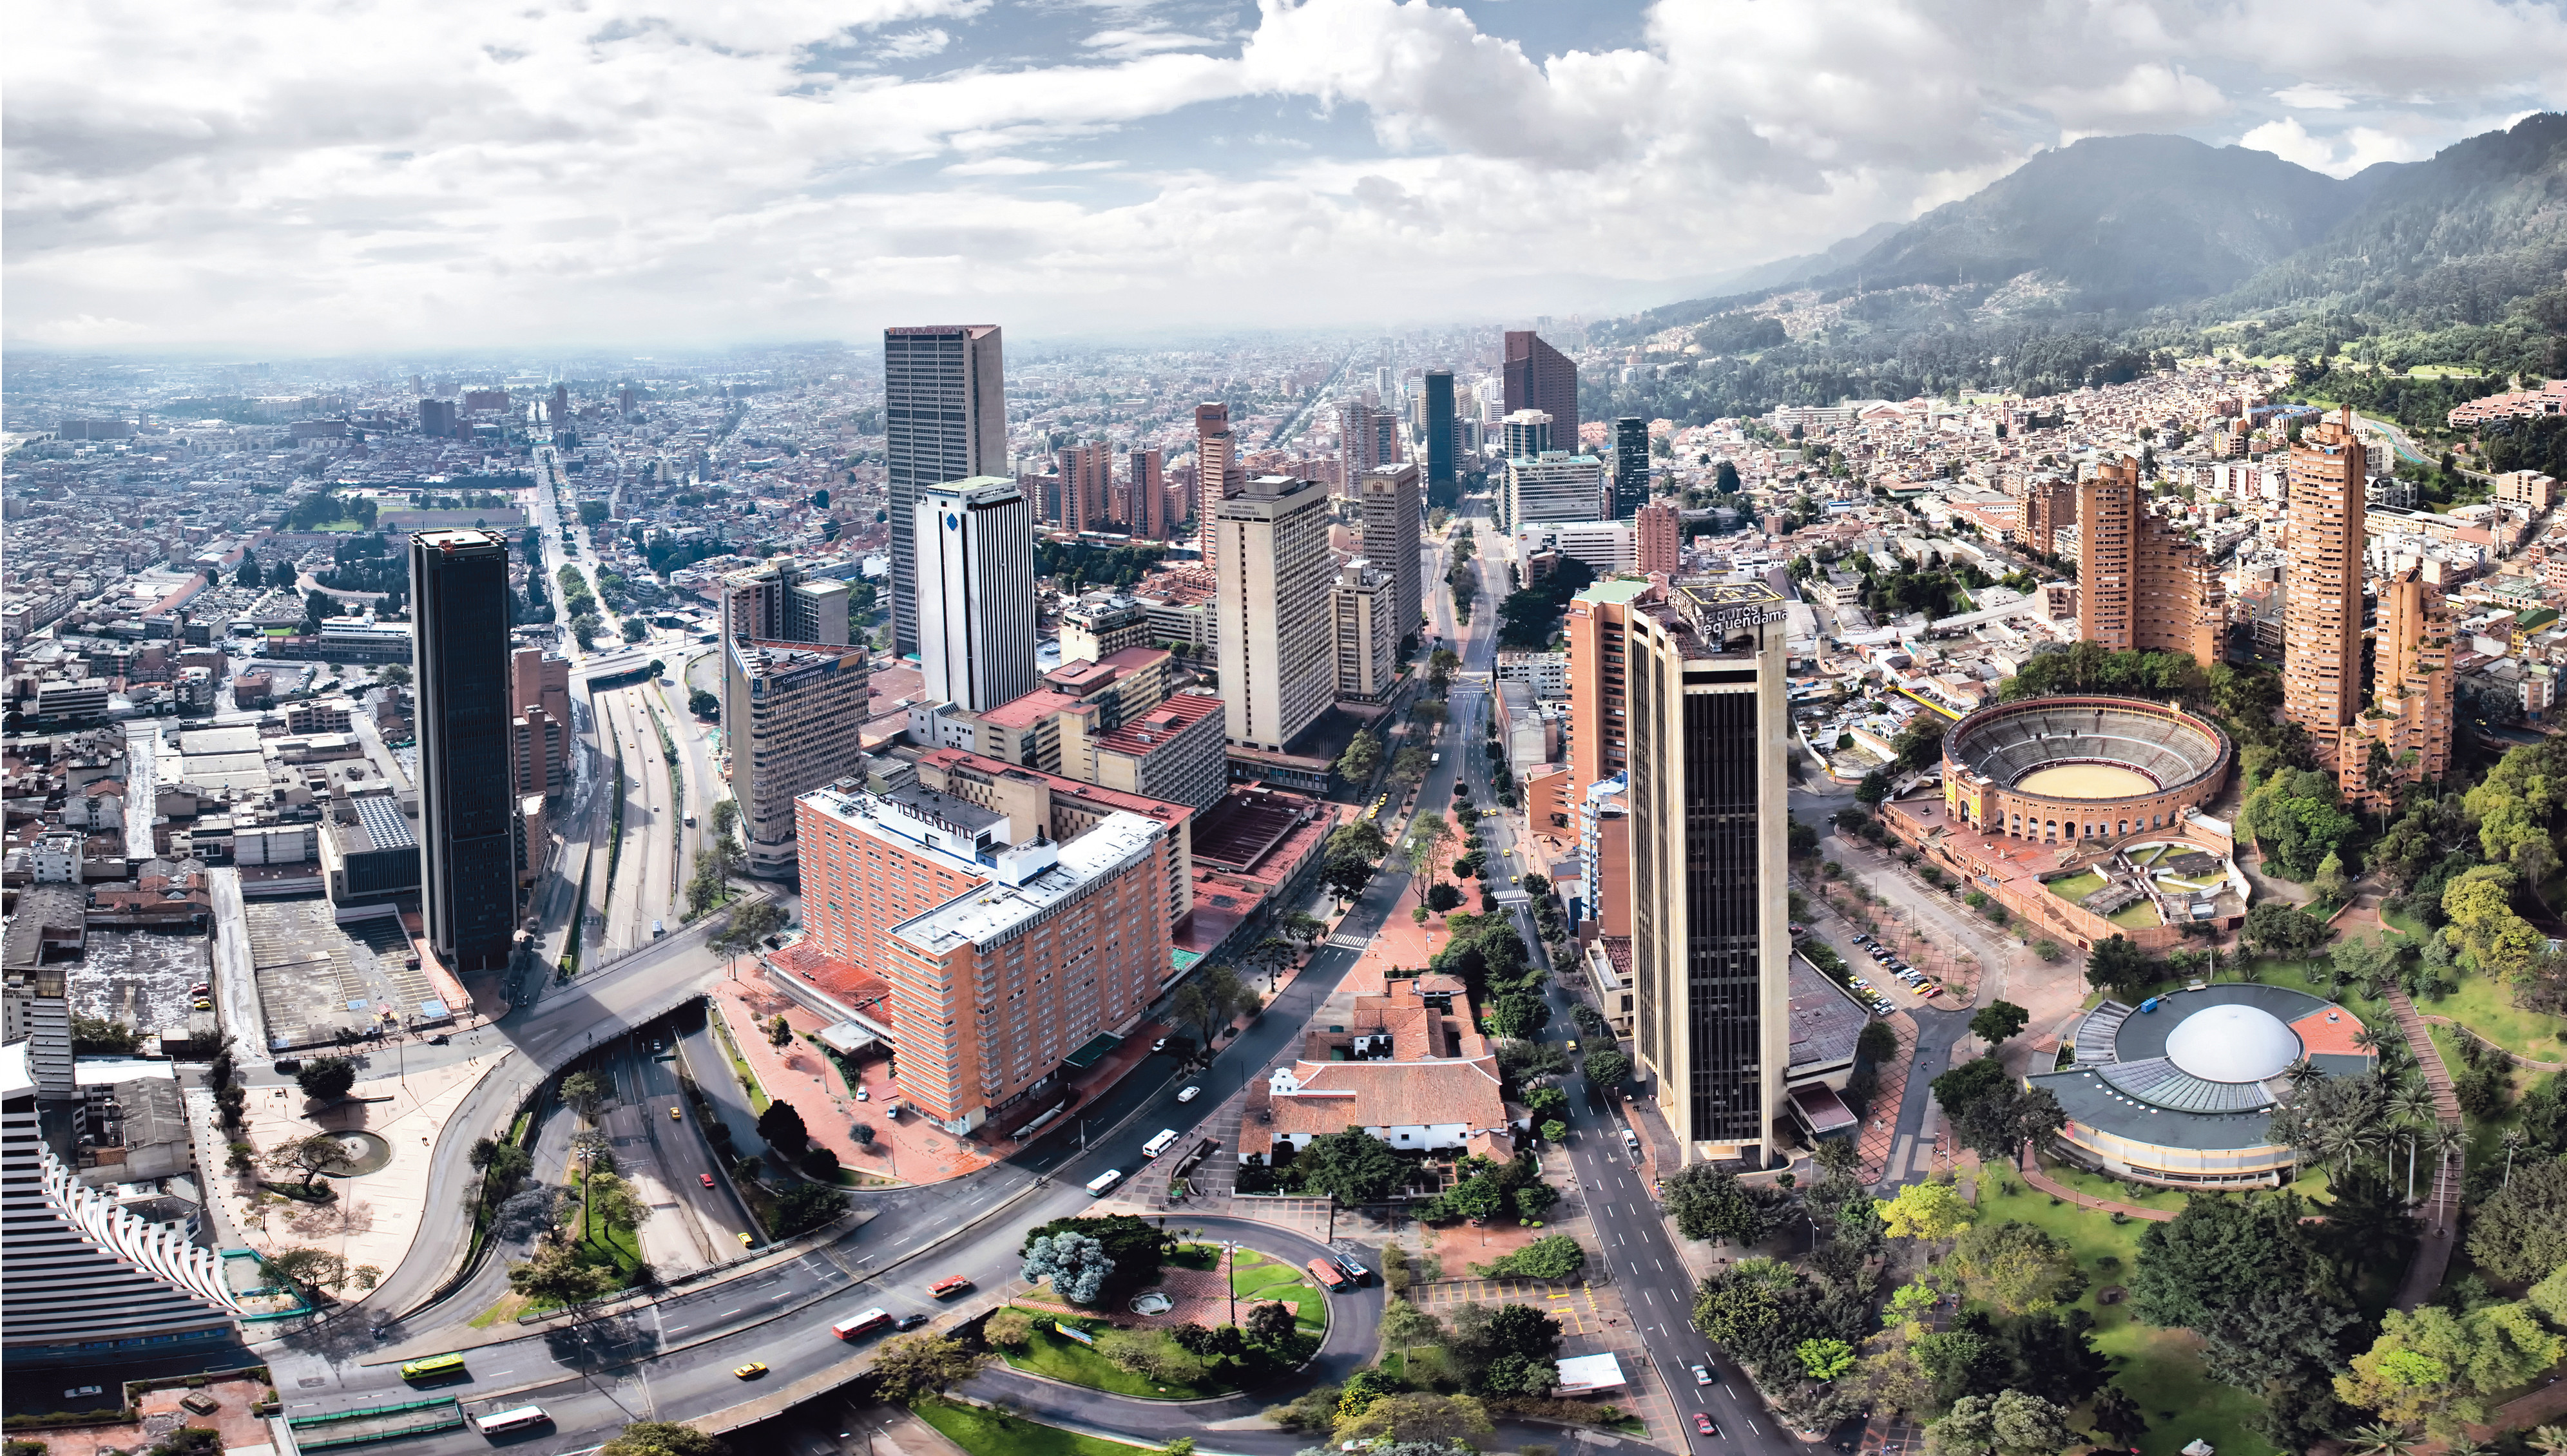 Bogota The Capital Of Colombia